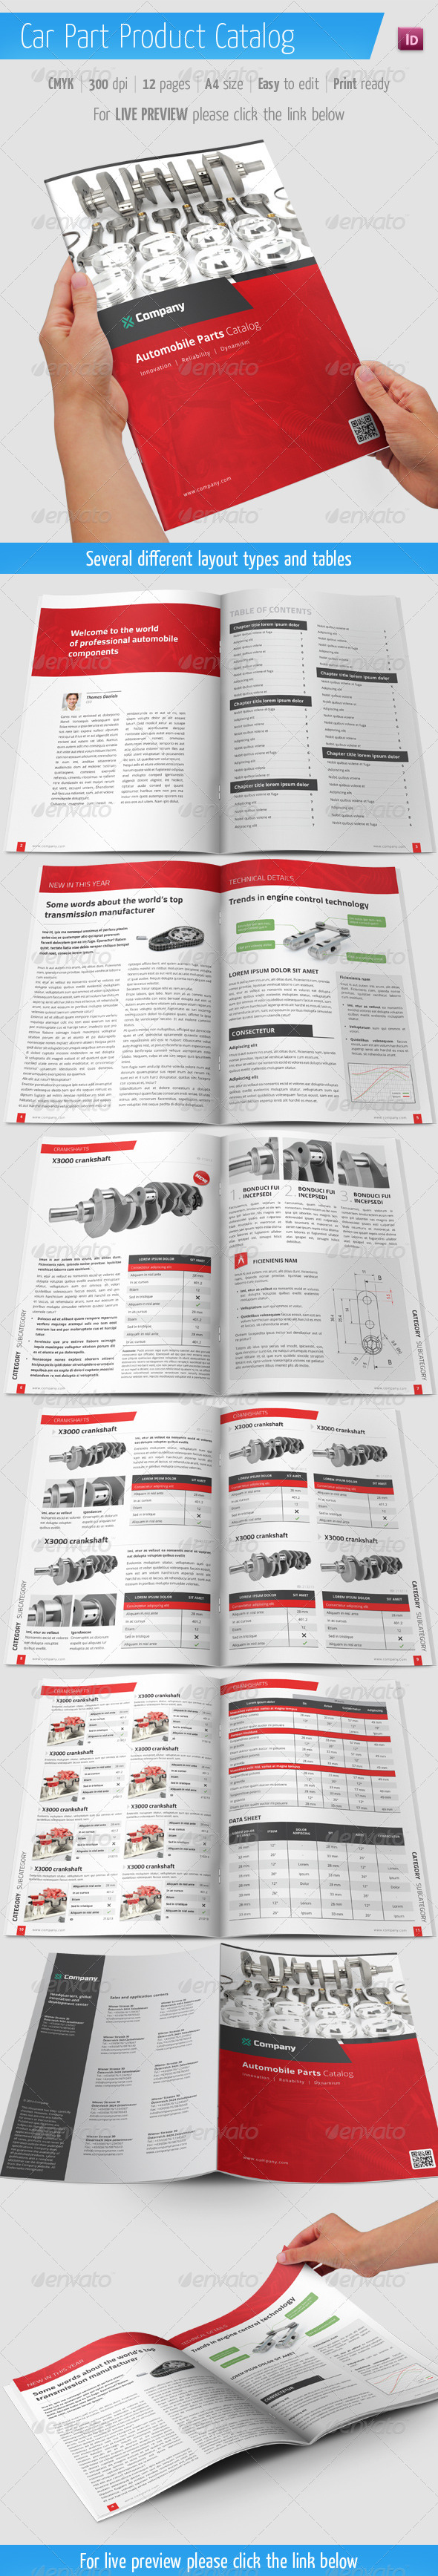 Car Part Product Catalog - Automobile Brochure - Catalogs Brochures